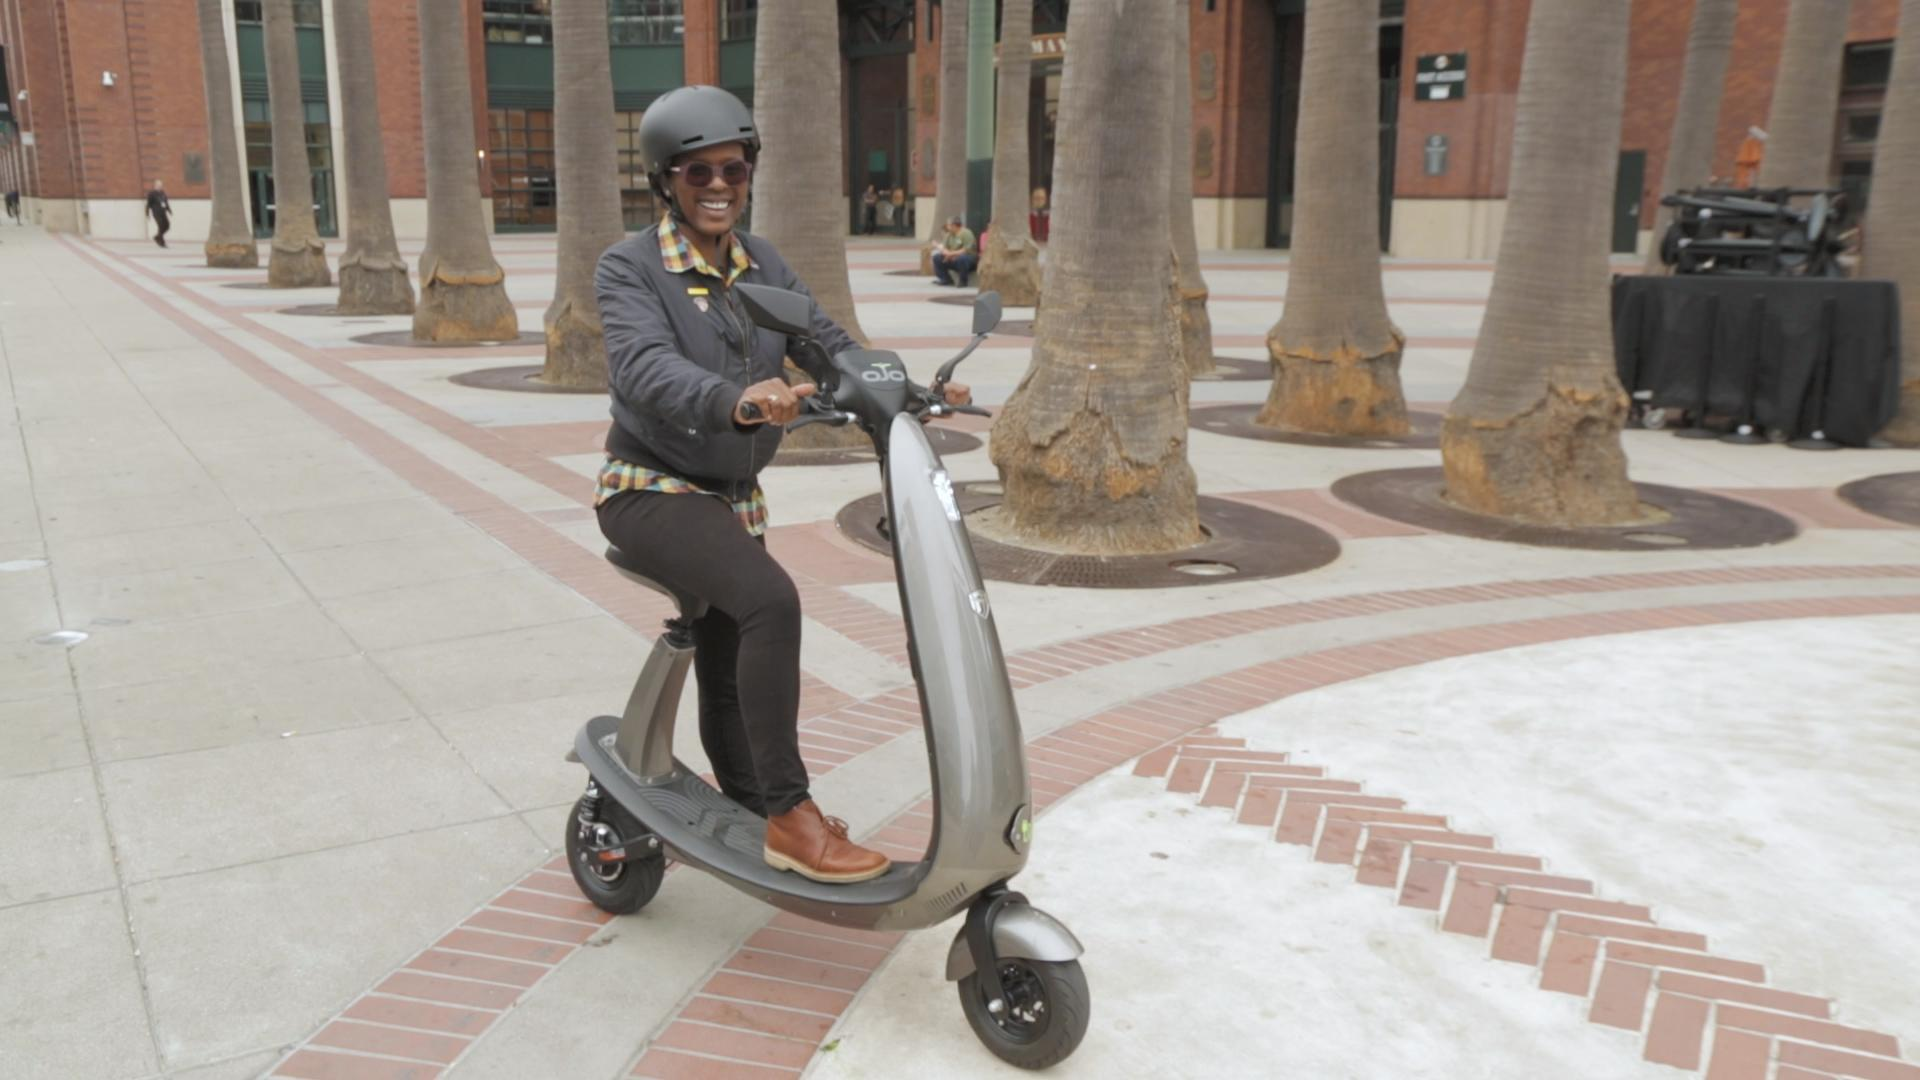 Zipping around town on the OJO electric scooter